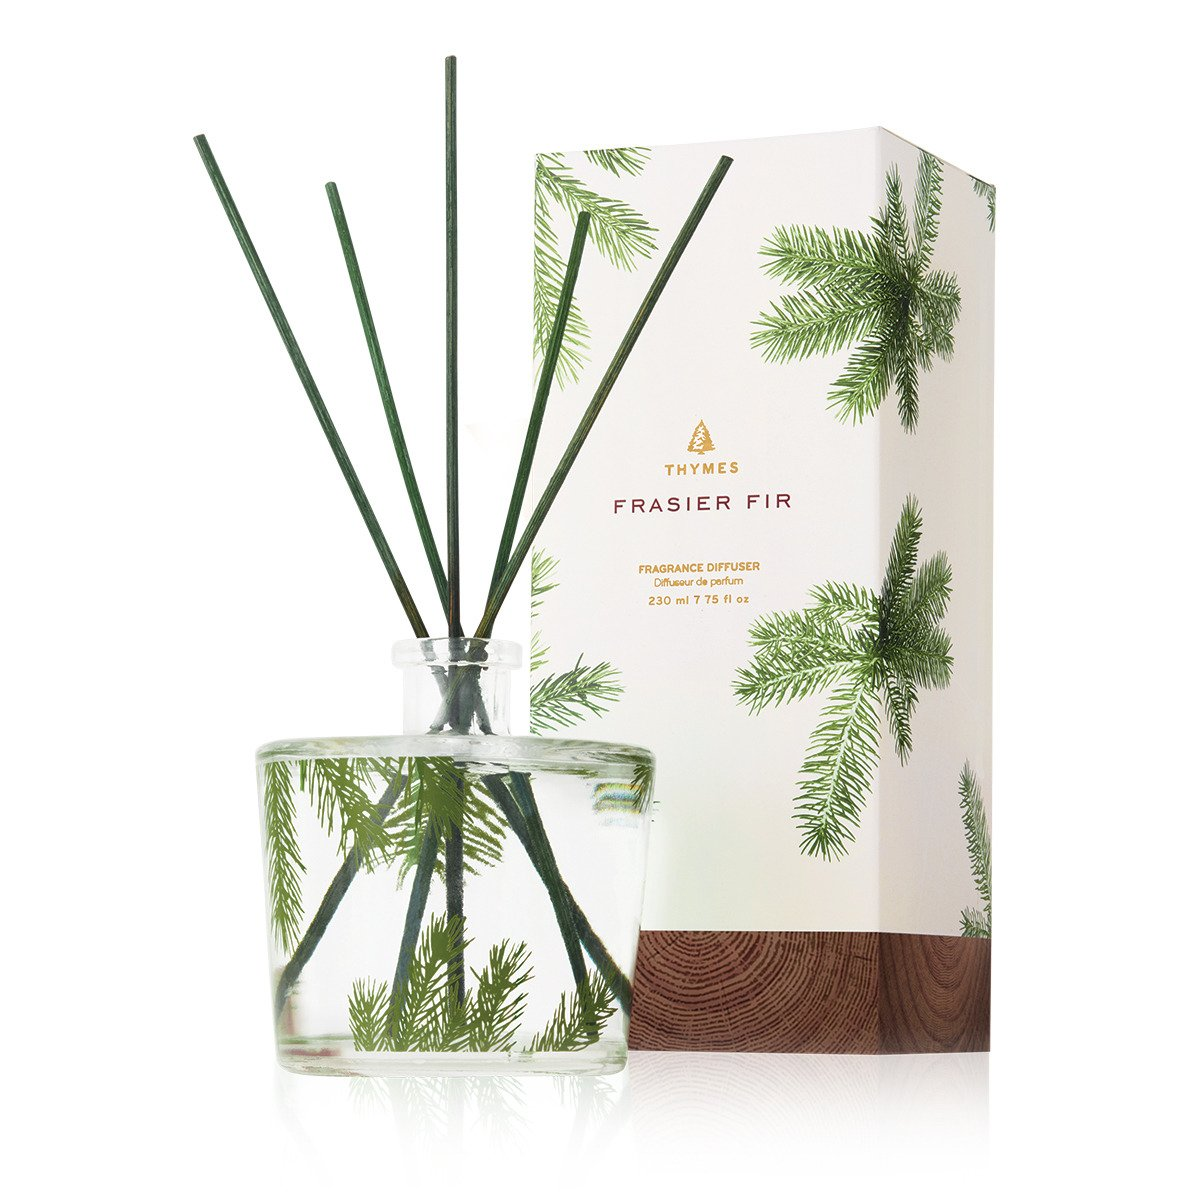 Thymes - Frasier Fir Reed Diffuser - Pine Needle Design - 7.75 Ounces by Thymes